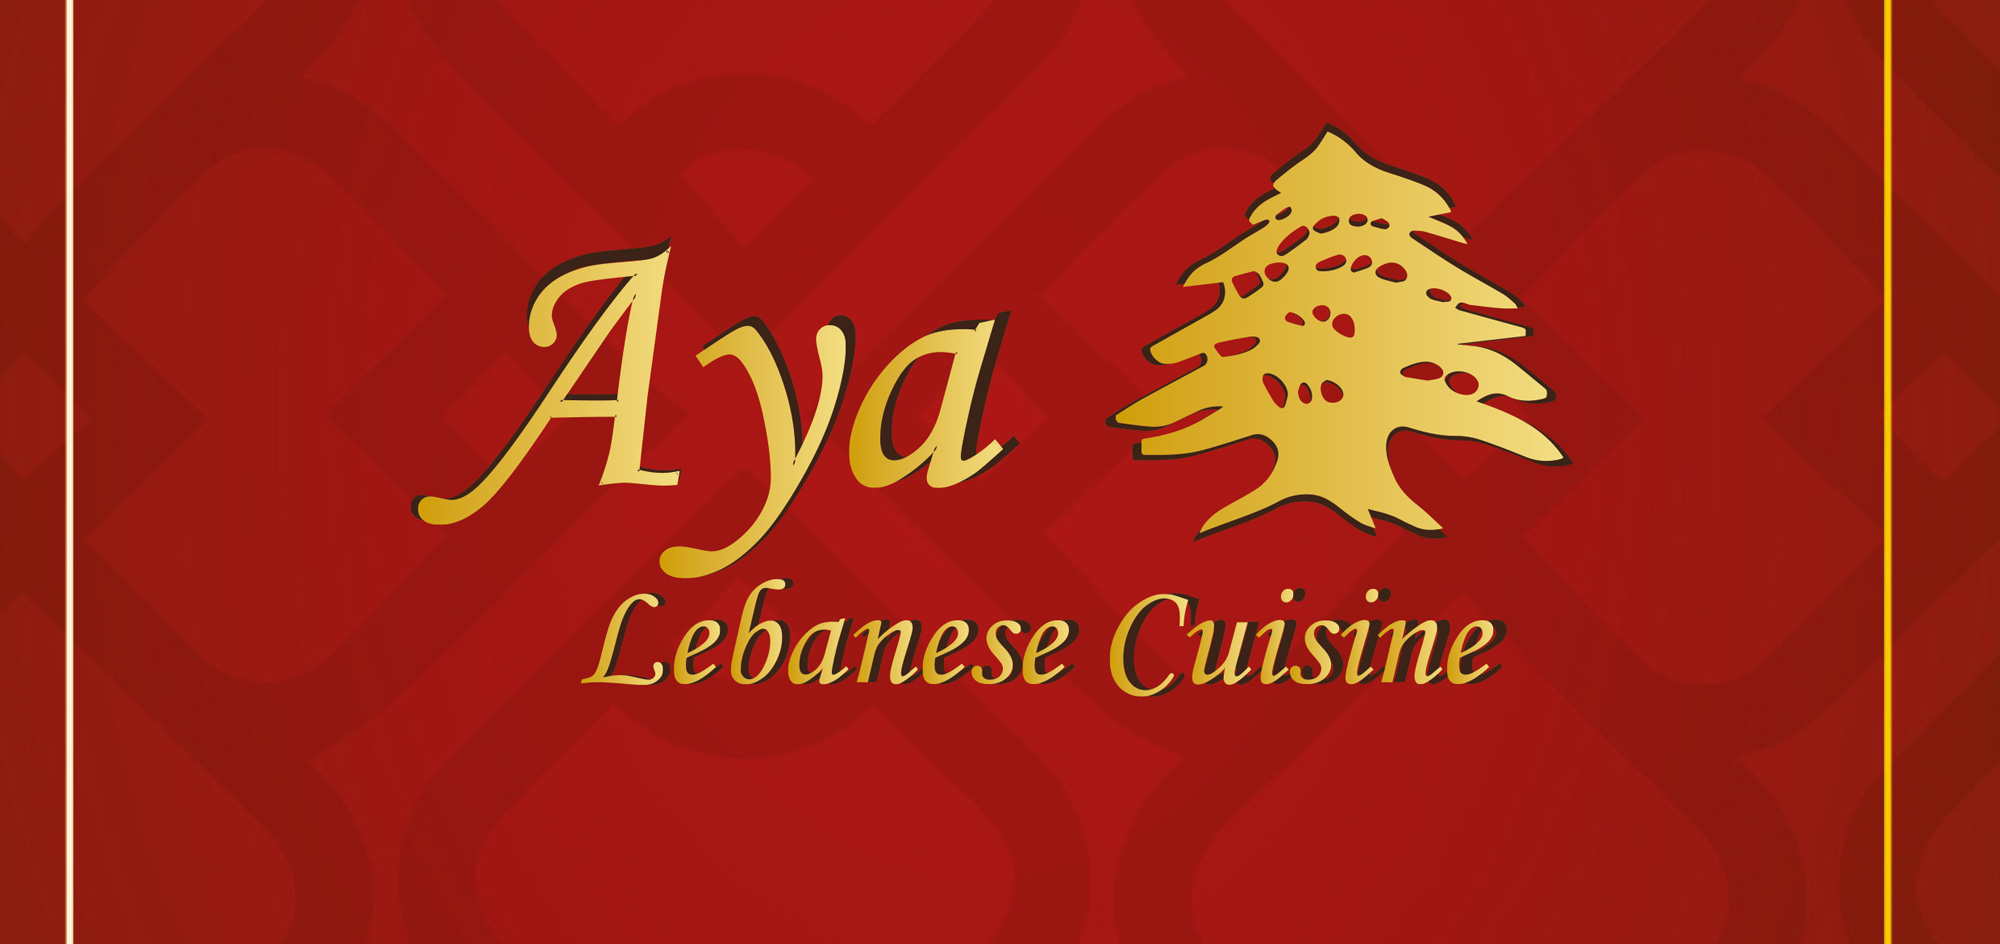 A Message From Aya Cuisine